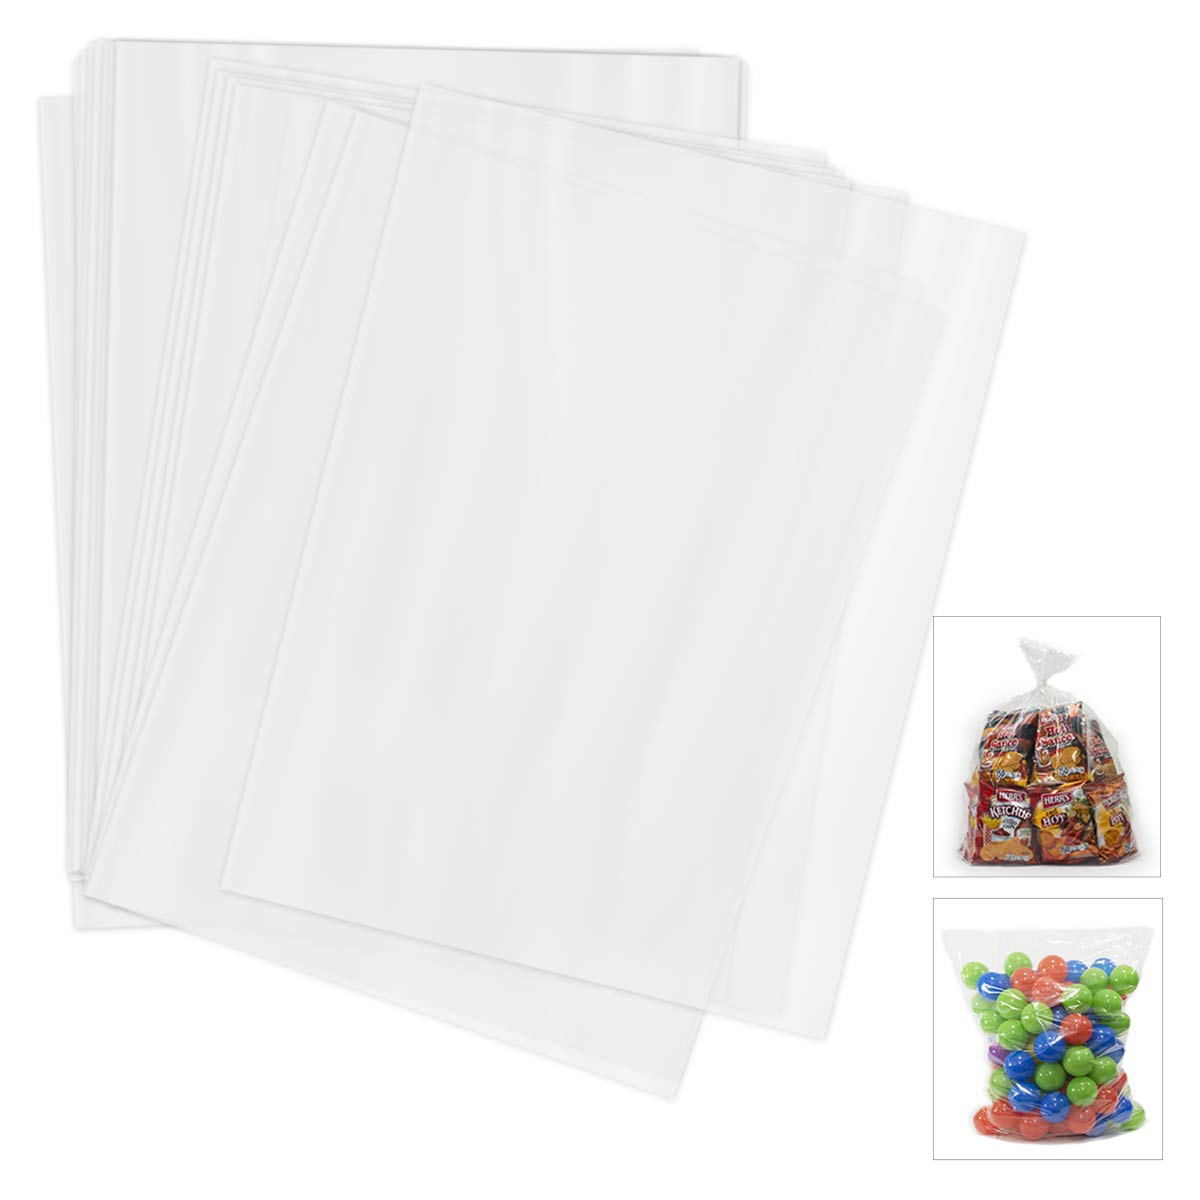 Poly Extra Large Storage Bags - 100 Pack - 18 X 24 Inches - 1.5 Mill Thick Jumbo Size Storage Bags - Clear Storage & Organizing Bags - Great For Meal Prepping Or Snacks - Multipurpose